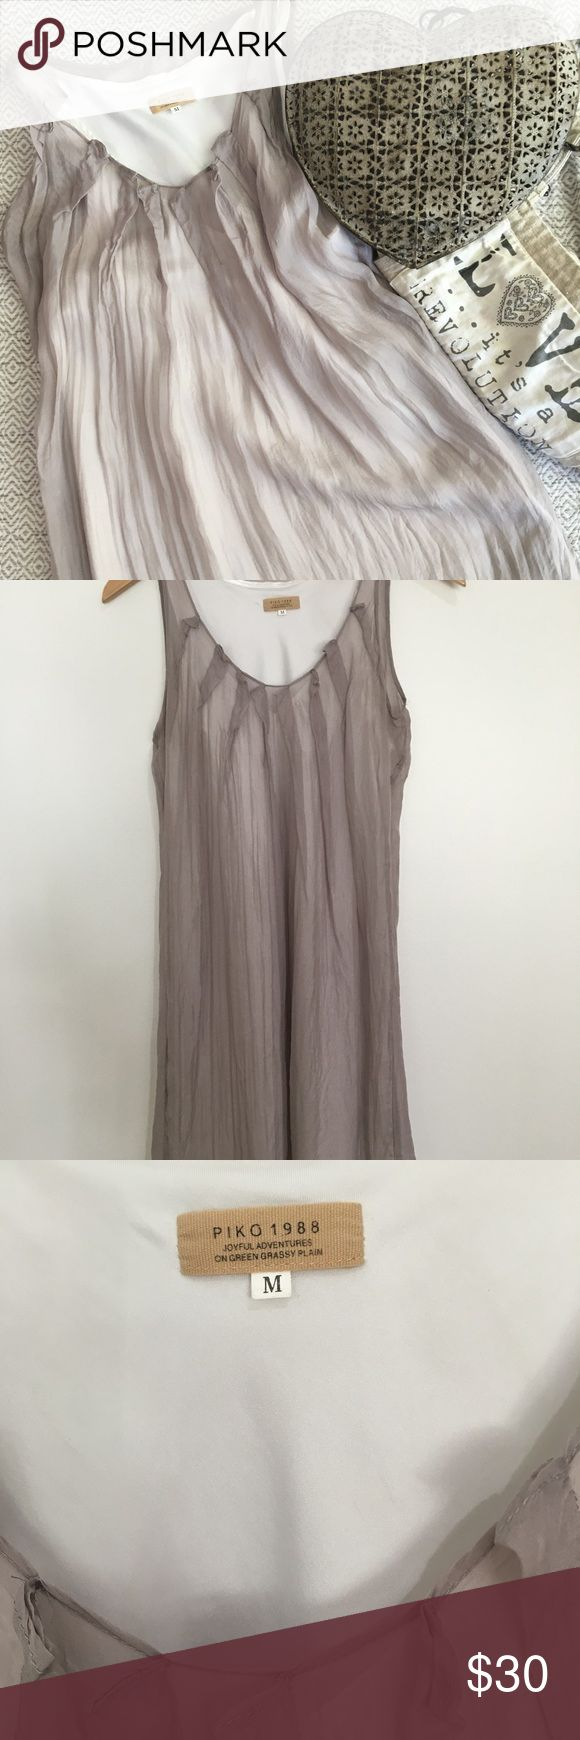 """Piko 1988 silk dress Sheer and flowy light gray 100%silk dress with a white 100% polyester slip. Measures approx: 34.5"""" long and 17"""" armpit-armpit across flat. A tiny stain in the front as shown in picture. Runs more like a small. Overall good condition. Piko 1988 Dresses Midi"""